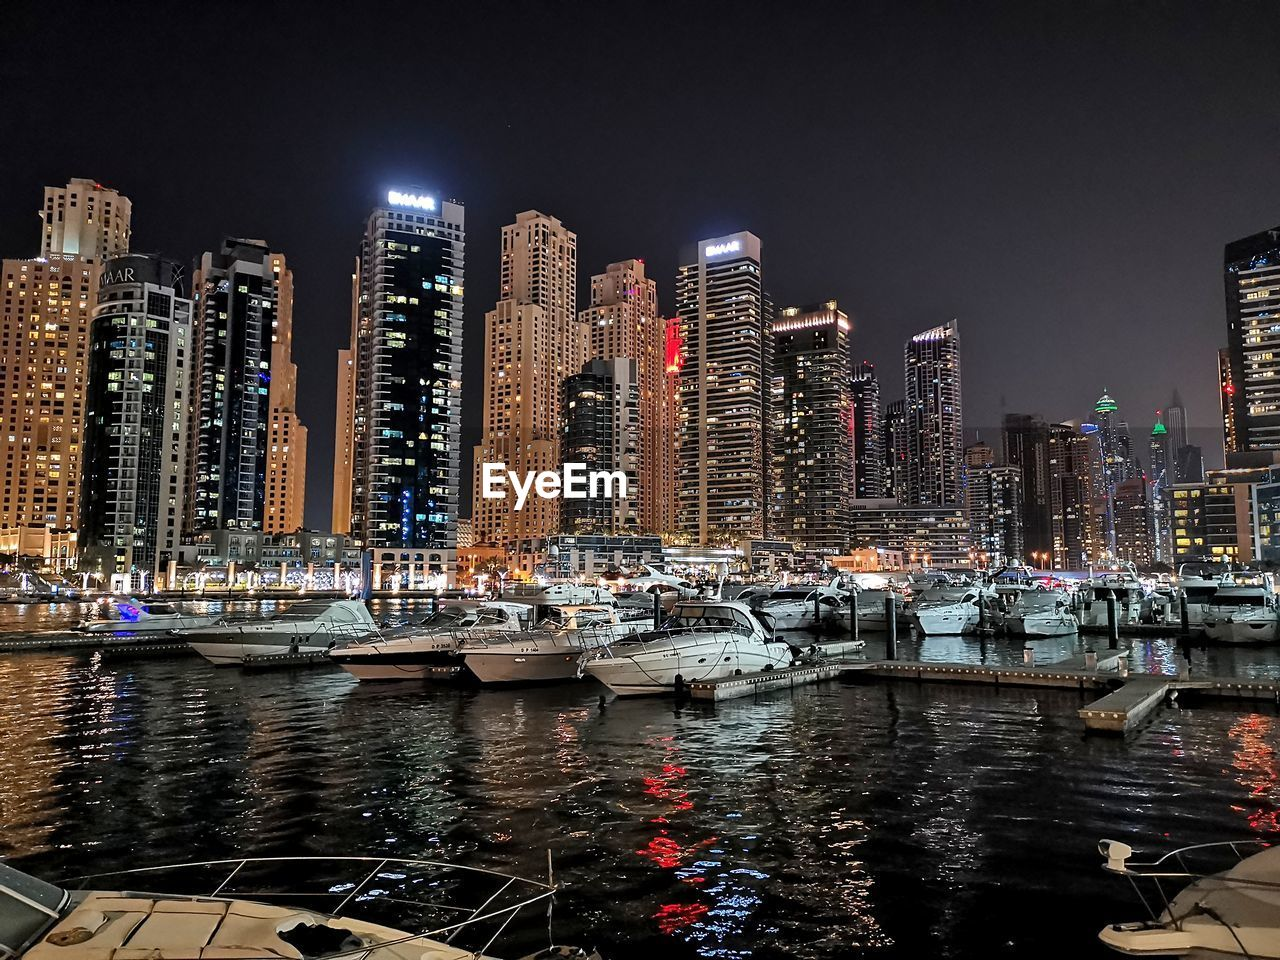 building exterior, architecture, water, built structure, night, city, nautical vessel, illuminated, transportation, building, mode of transportation, sky, waterfront, no people, office building exterior, tall - high, nature, skyscraper, cityscape, modern, outdoors, canal, passenger craft, marina, financial district, yacht